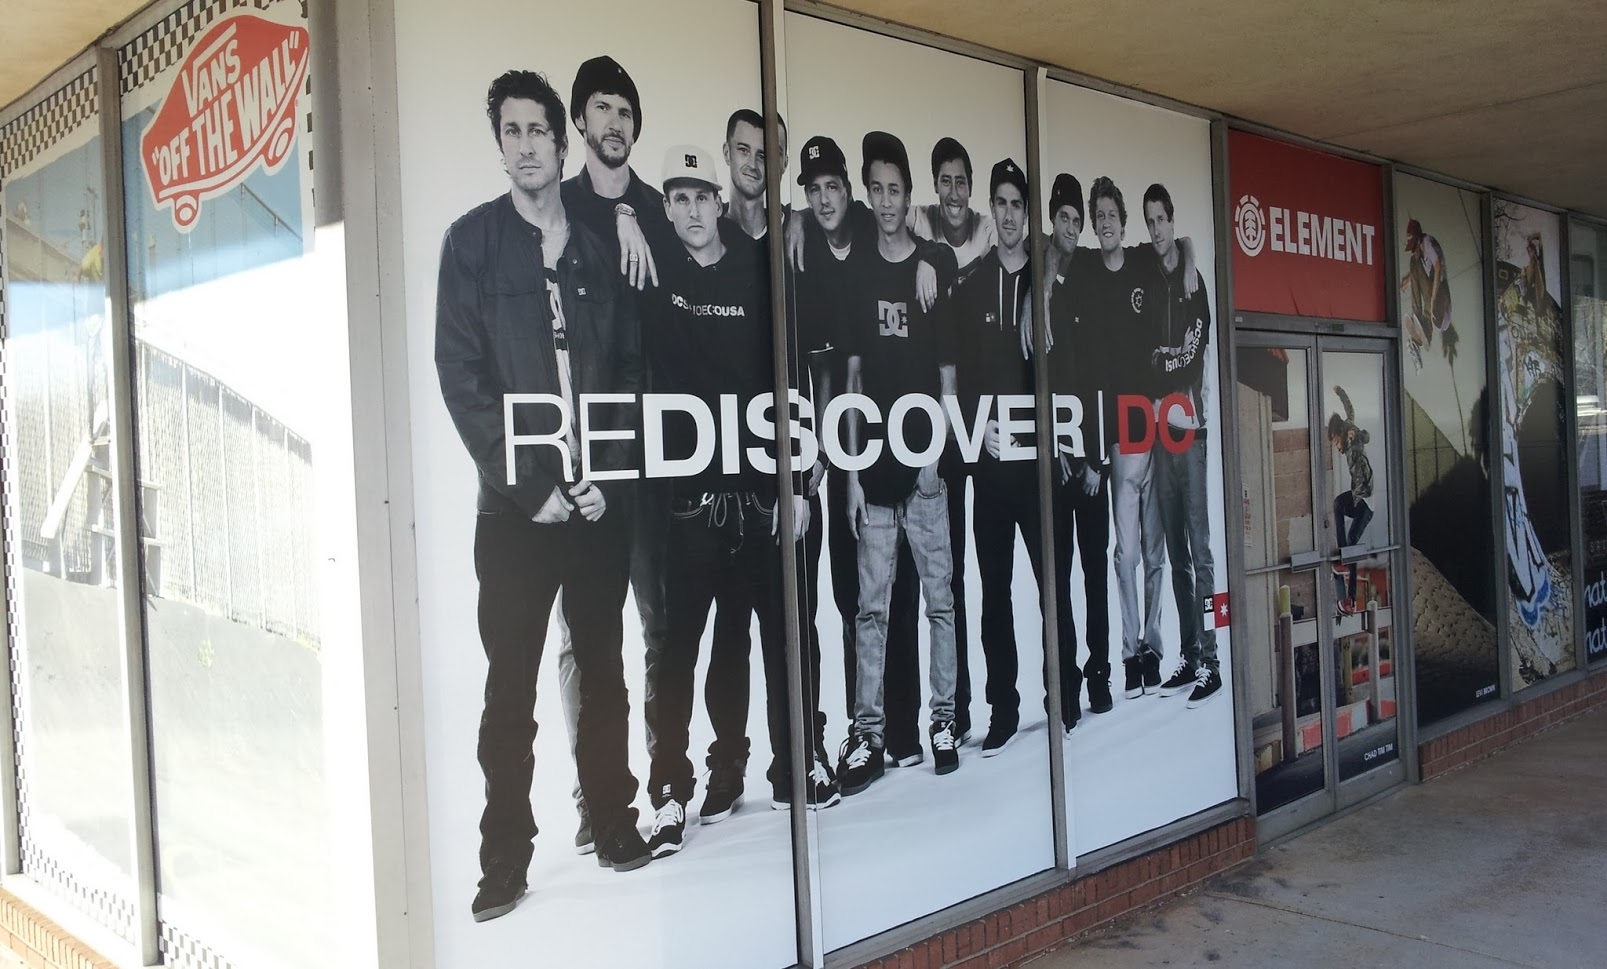 rediscover dc-element storefront graphics wrap vinyl display